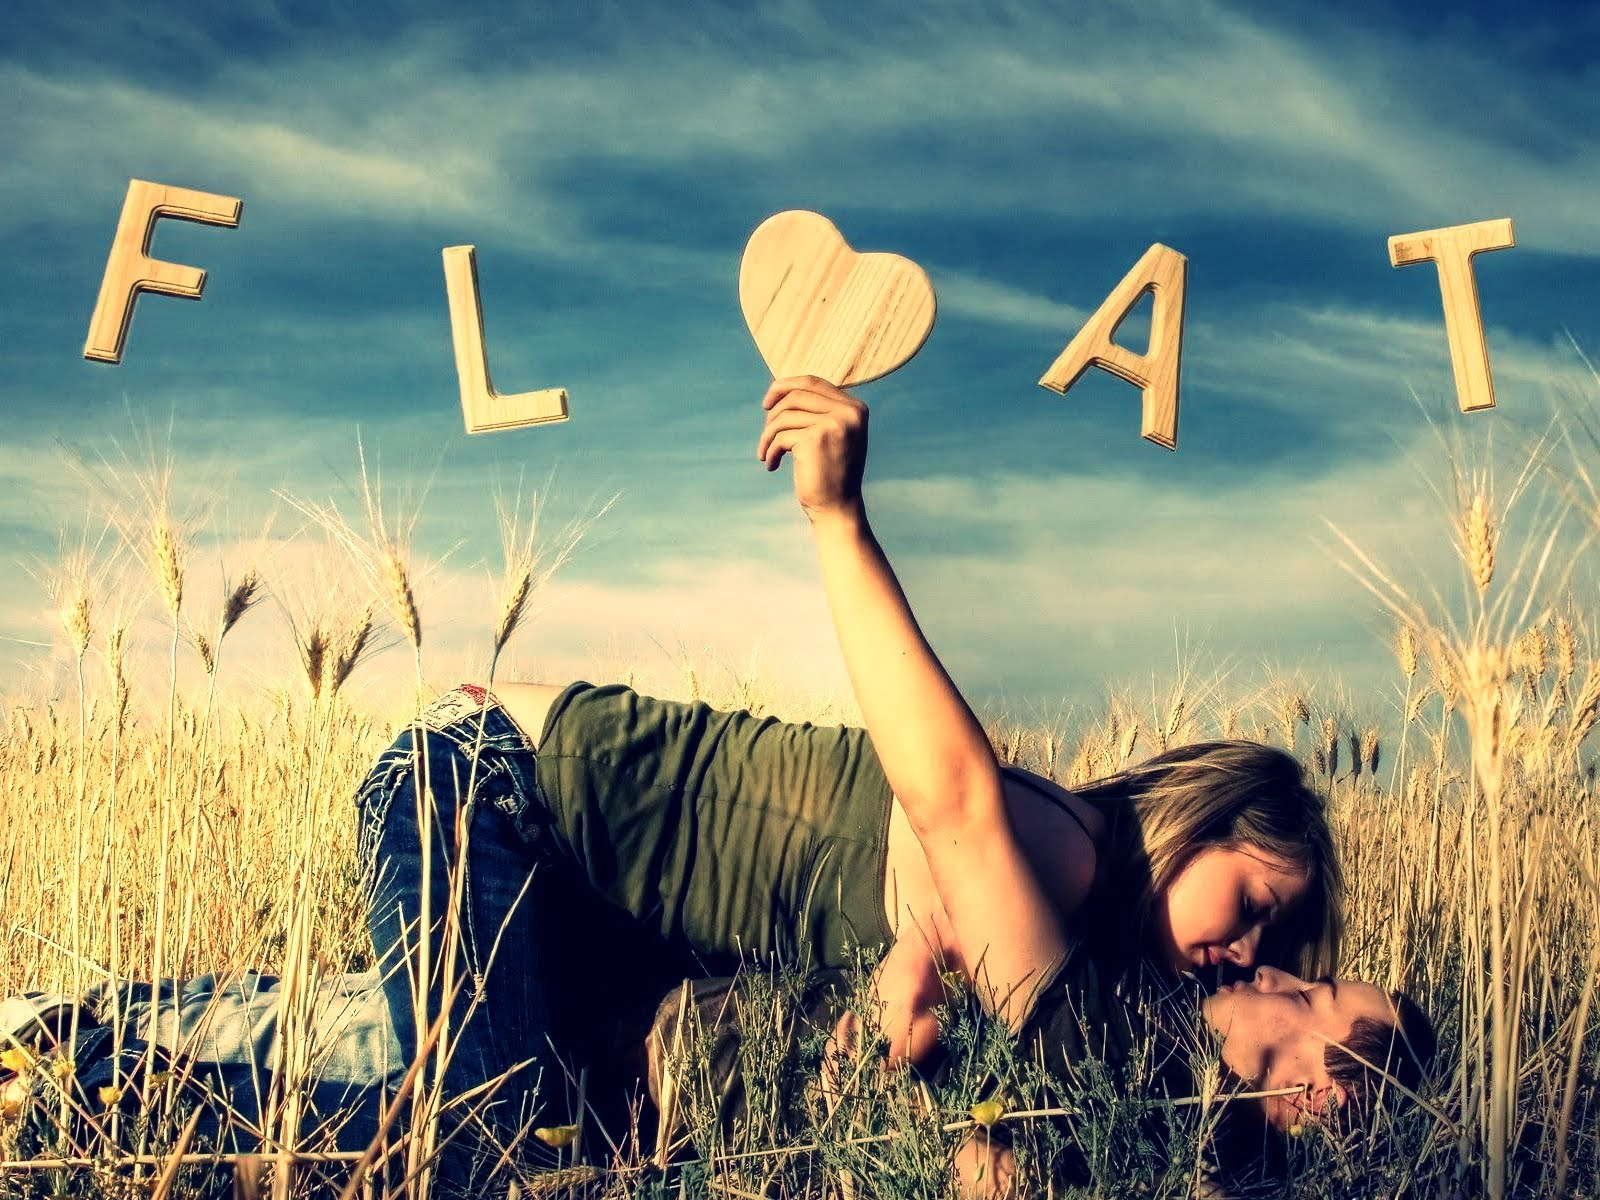 Love Wallpaper For Girlfriend And Boyfriend : Best HD Wallpapers, New Wallpapers, Pc Wallpapers, Mobile Wallpapers: July 2011